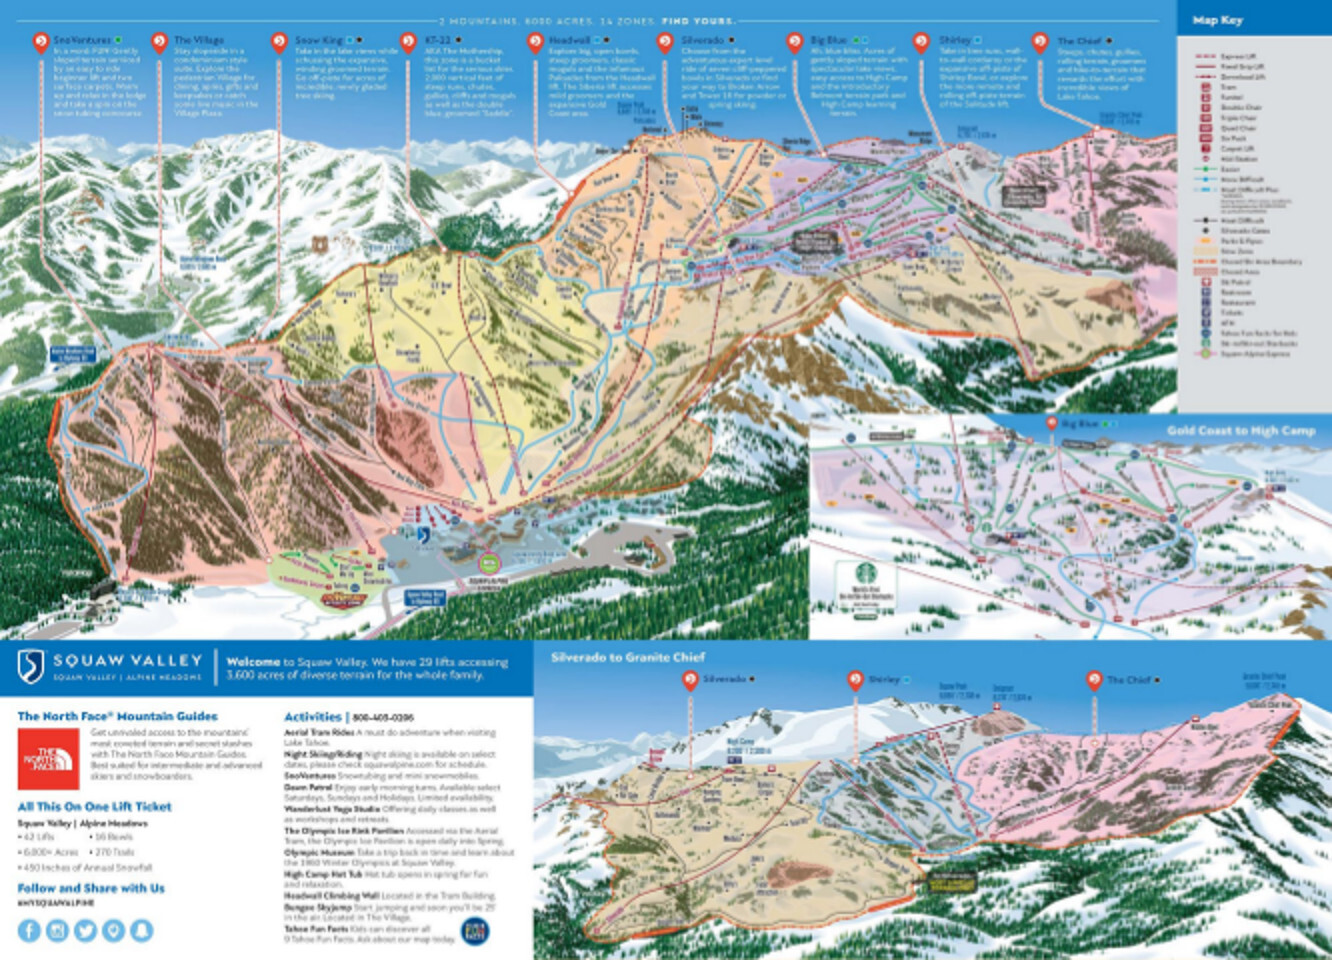 Squaw Valley Ski Resort Guide Location Map Squaw Valley Ski